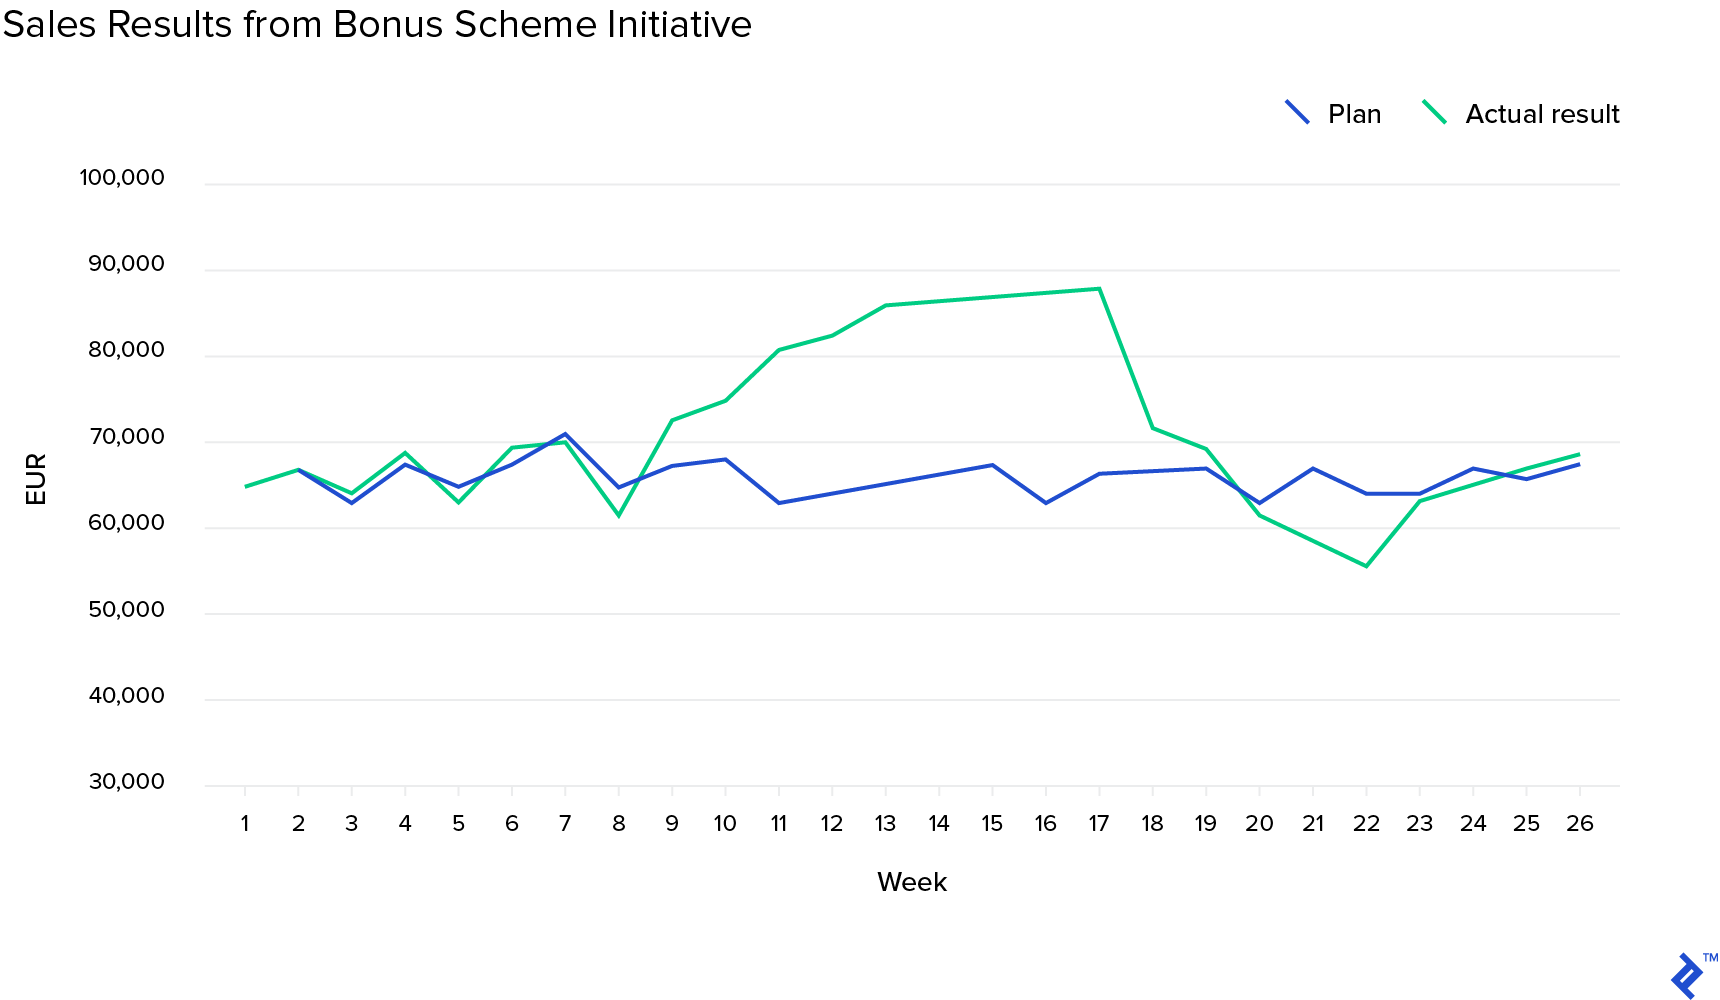 Sales results from bonus scheme initiative